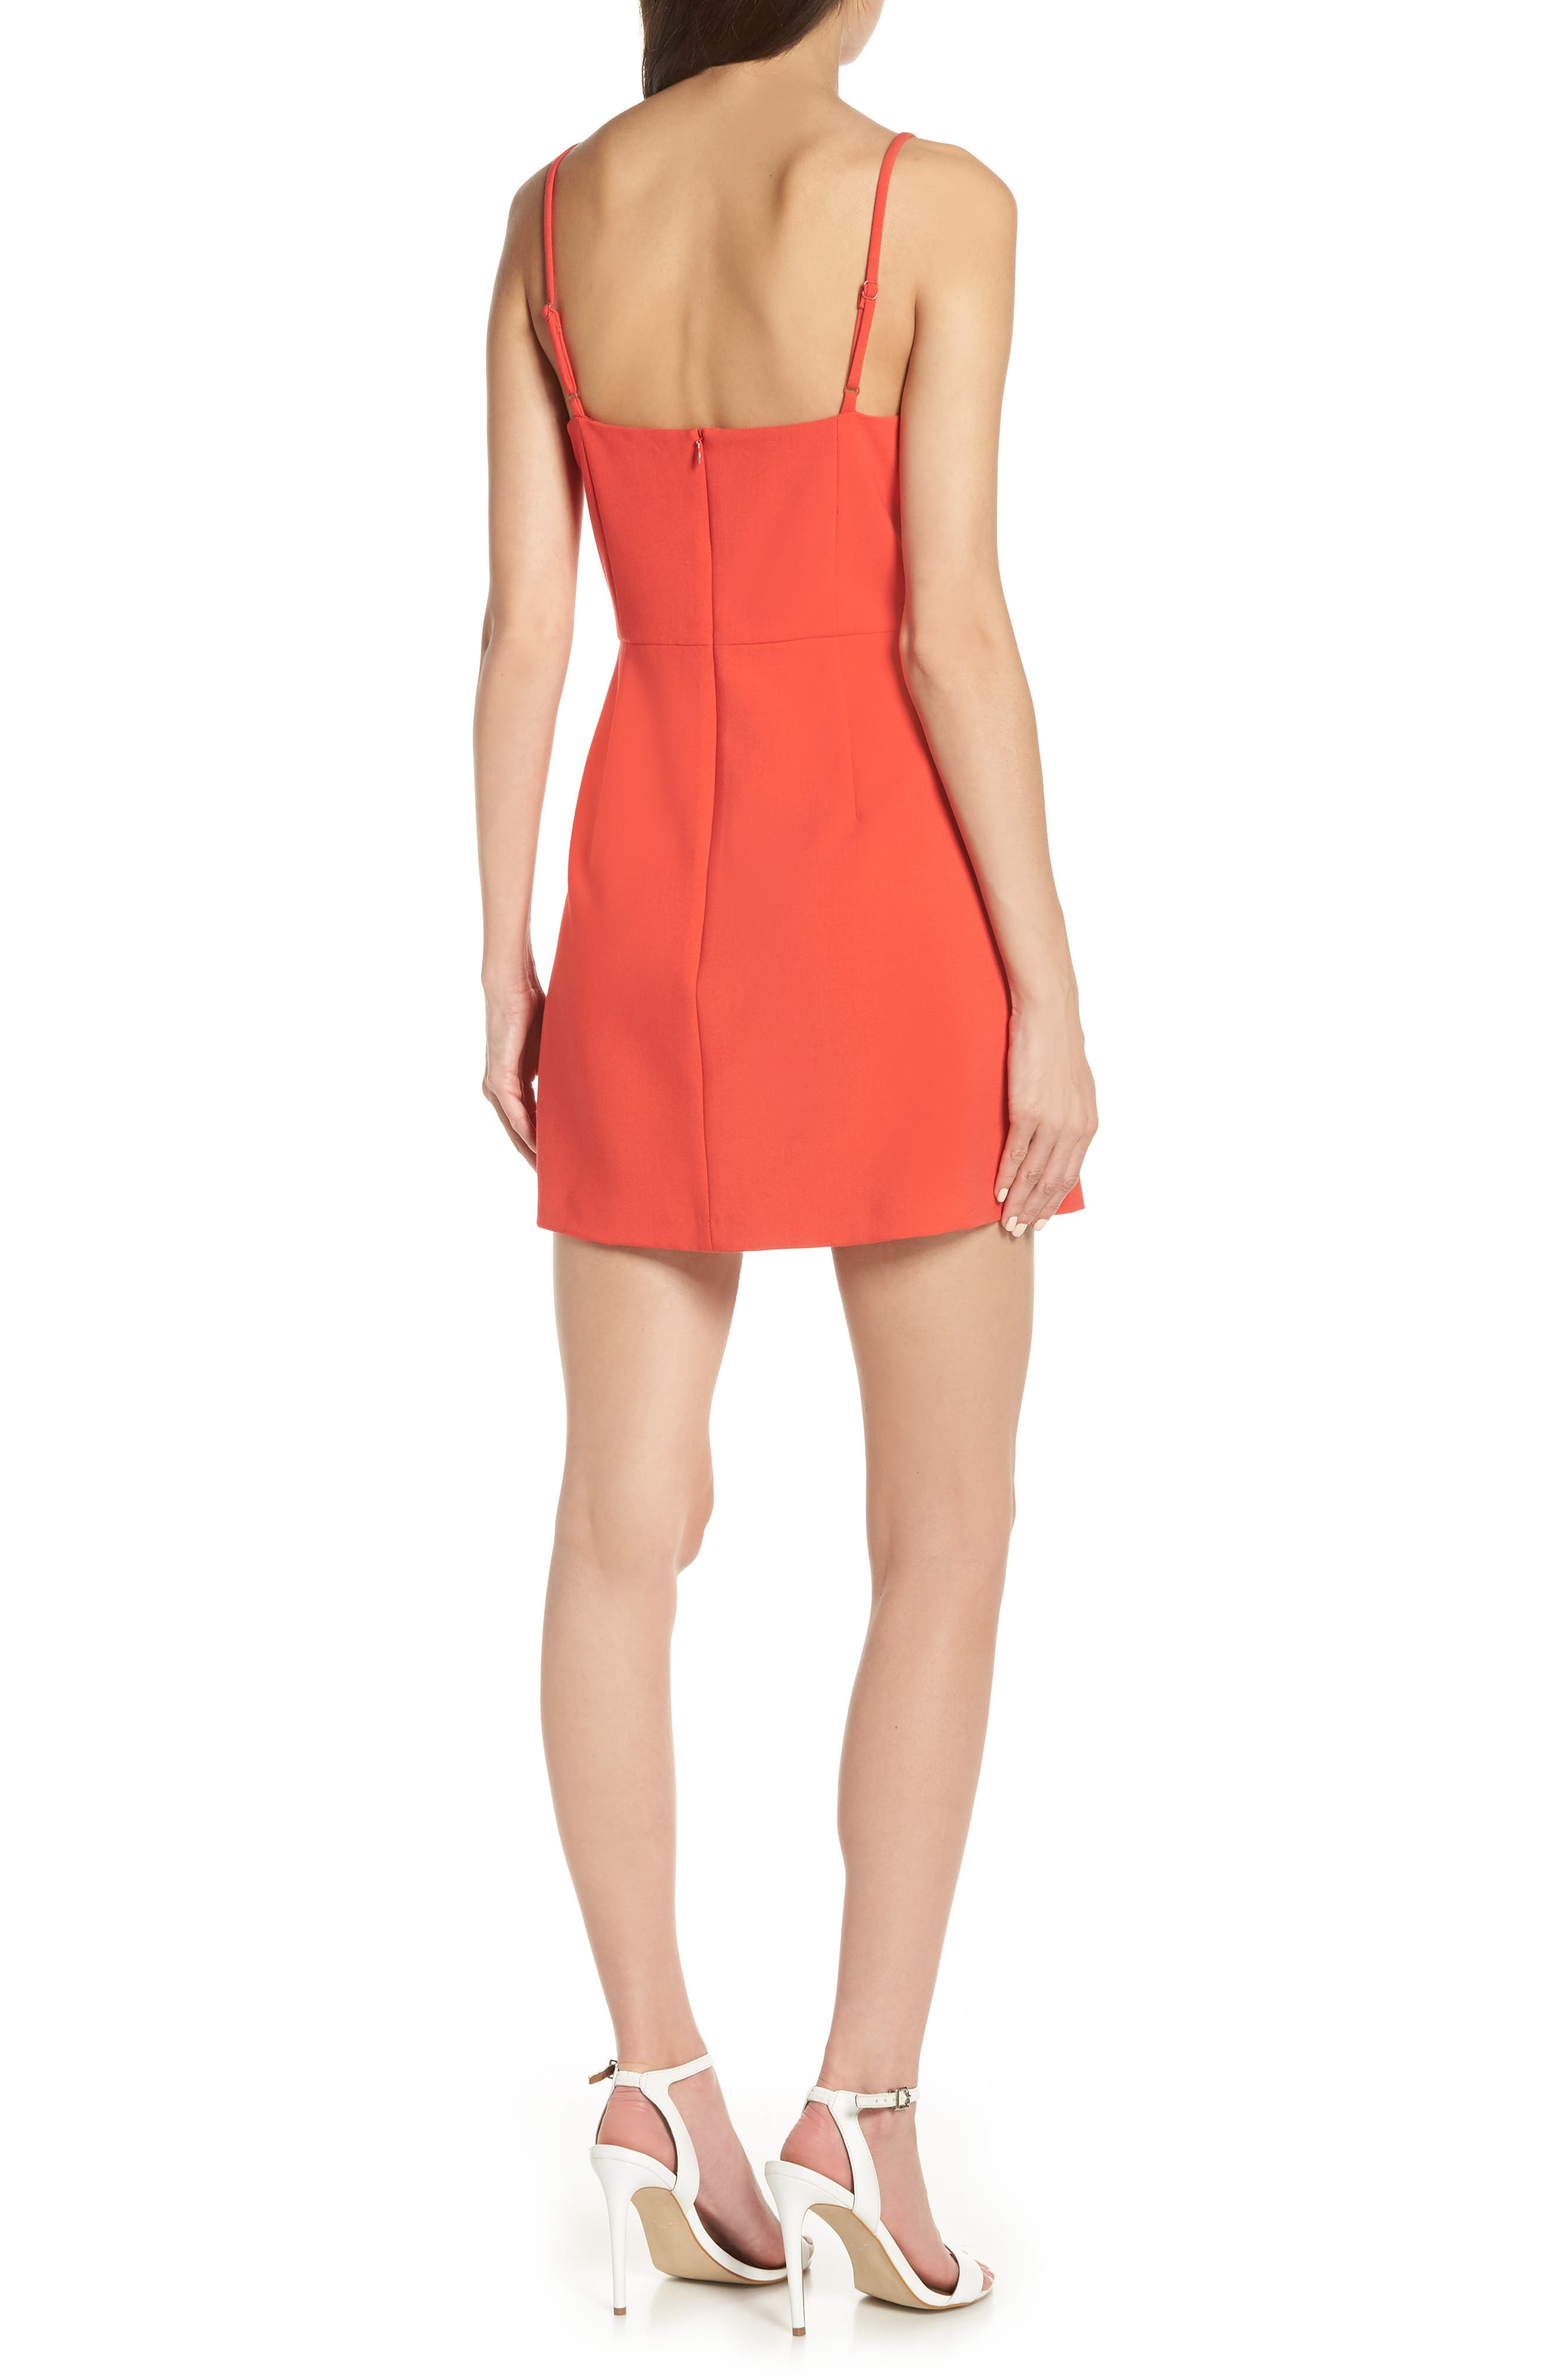 FRENCH CONNECTION, Whisper Light Sweetheart Minidress, Alternate thumbnail 2, color, FIRE CORAL